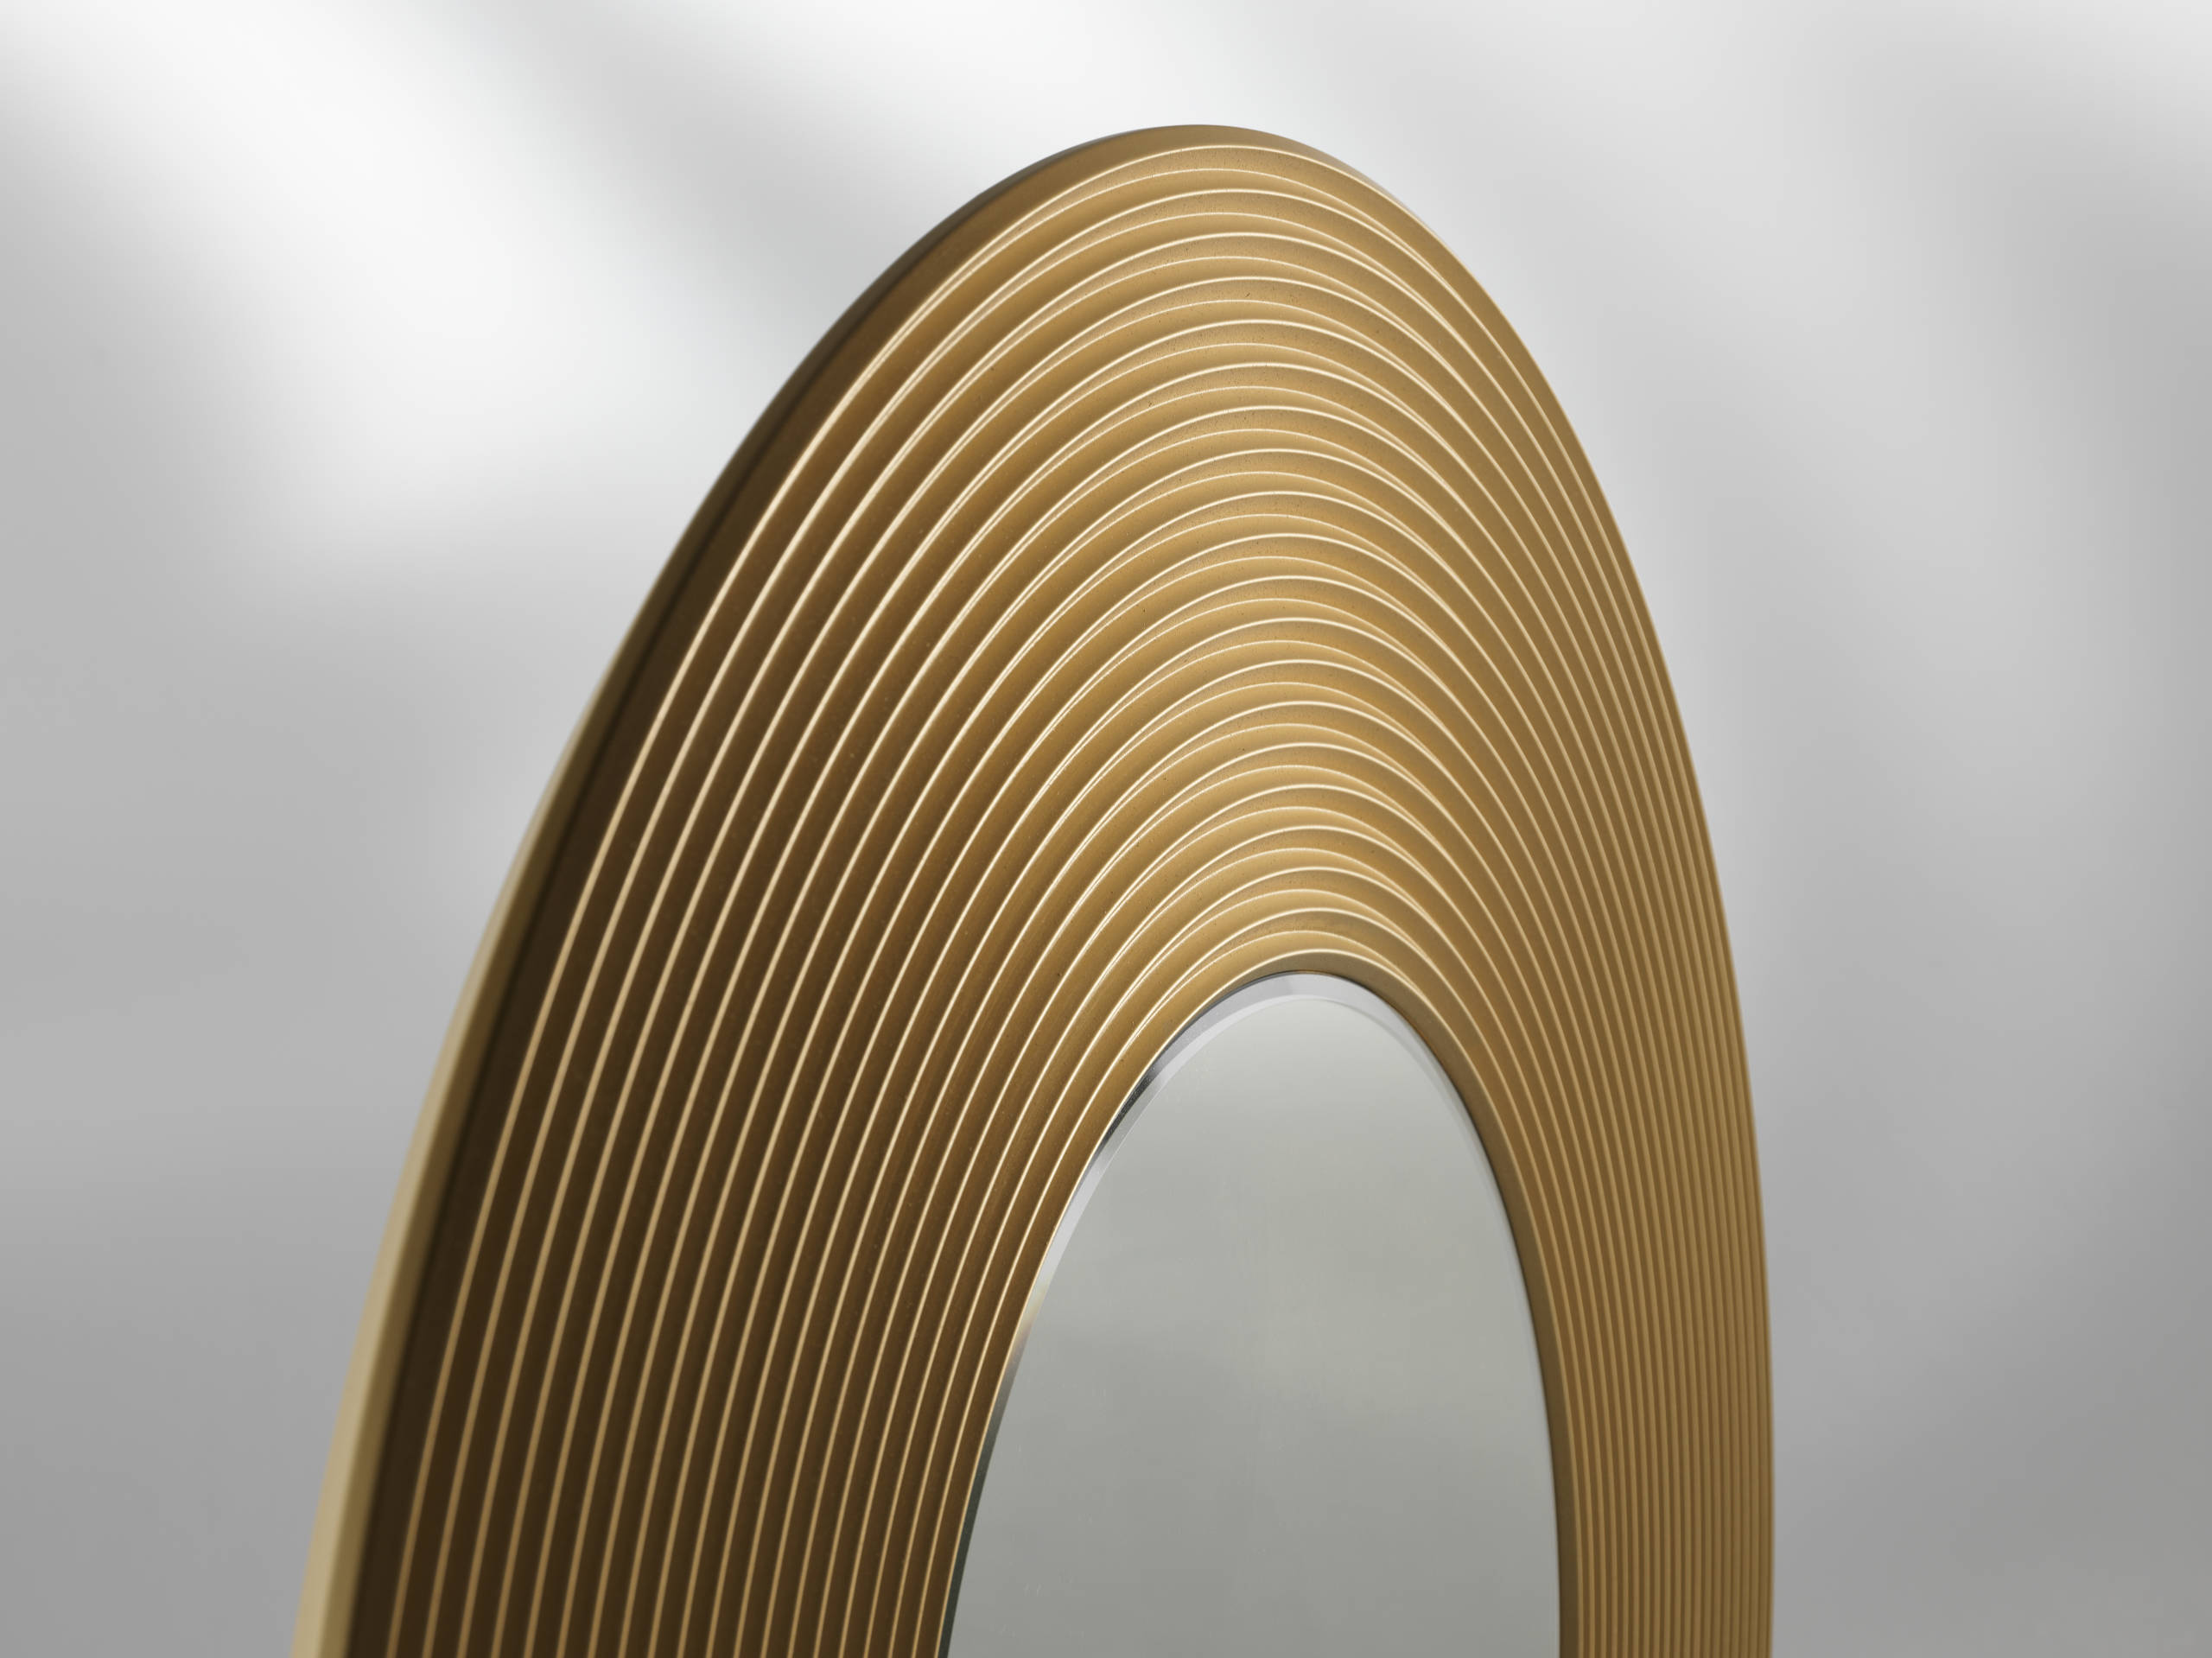 Albedo Design GONG_B - Mirror with circular frame of gold satin laquered wood